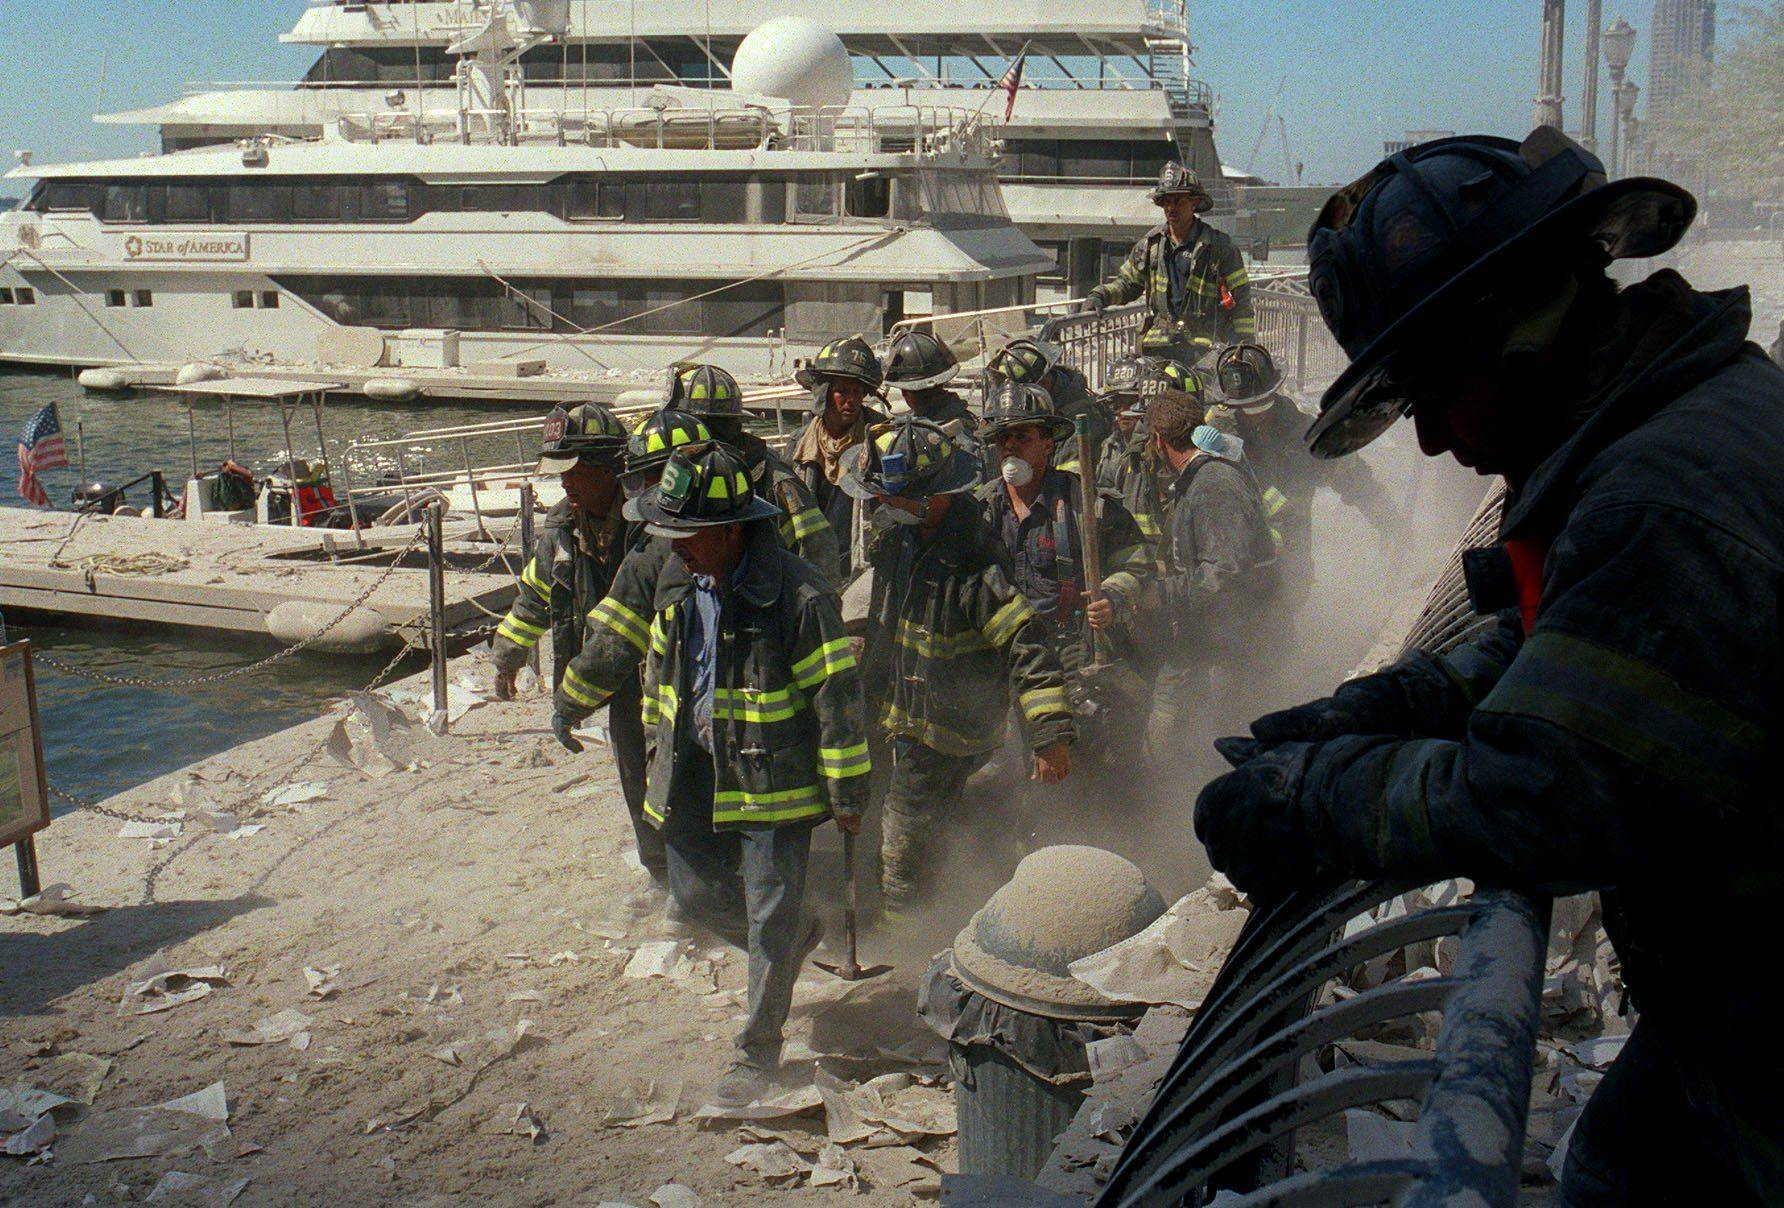 Firefighters carry an injured fireman from the World Trade Center area in New York after the buildings collapsed Sept. 11, 2001.